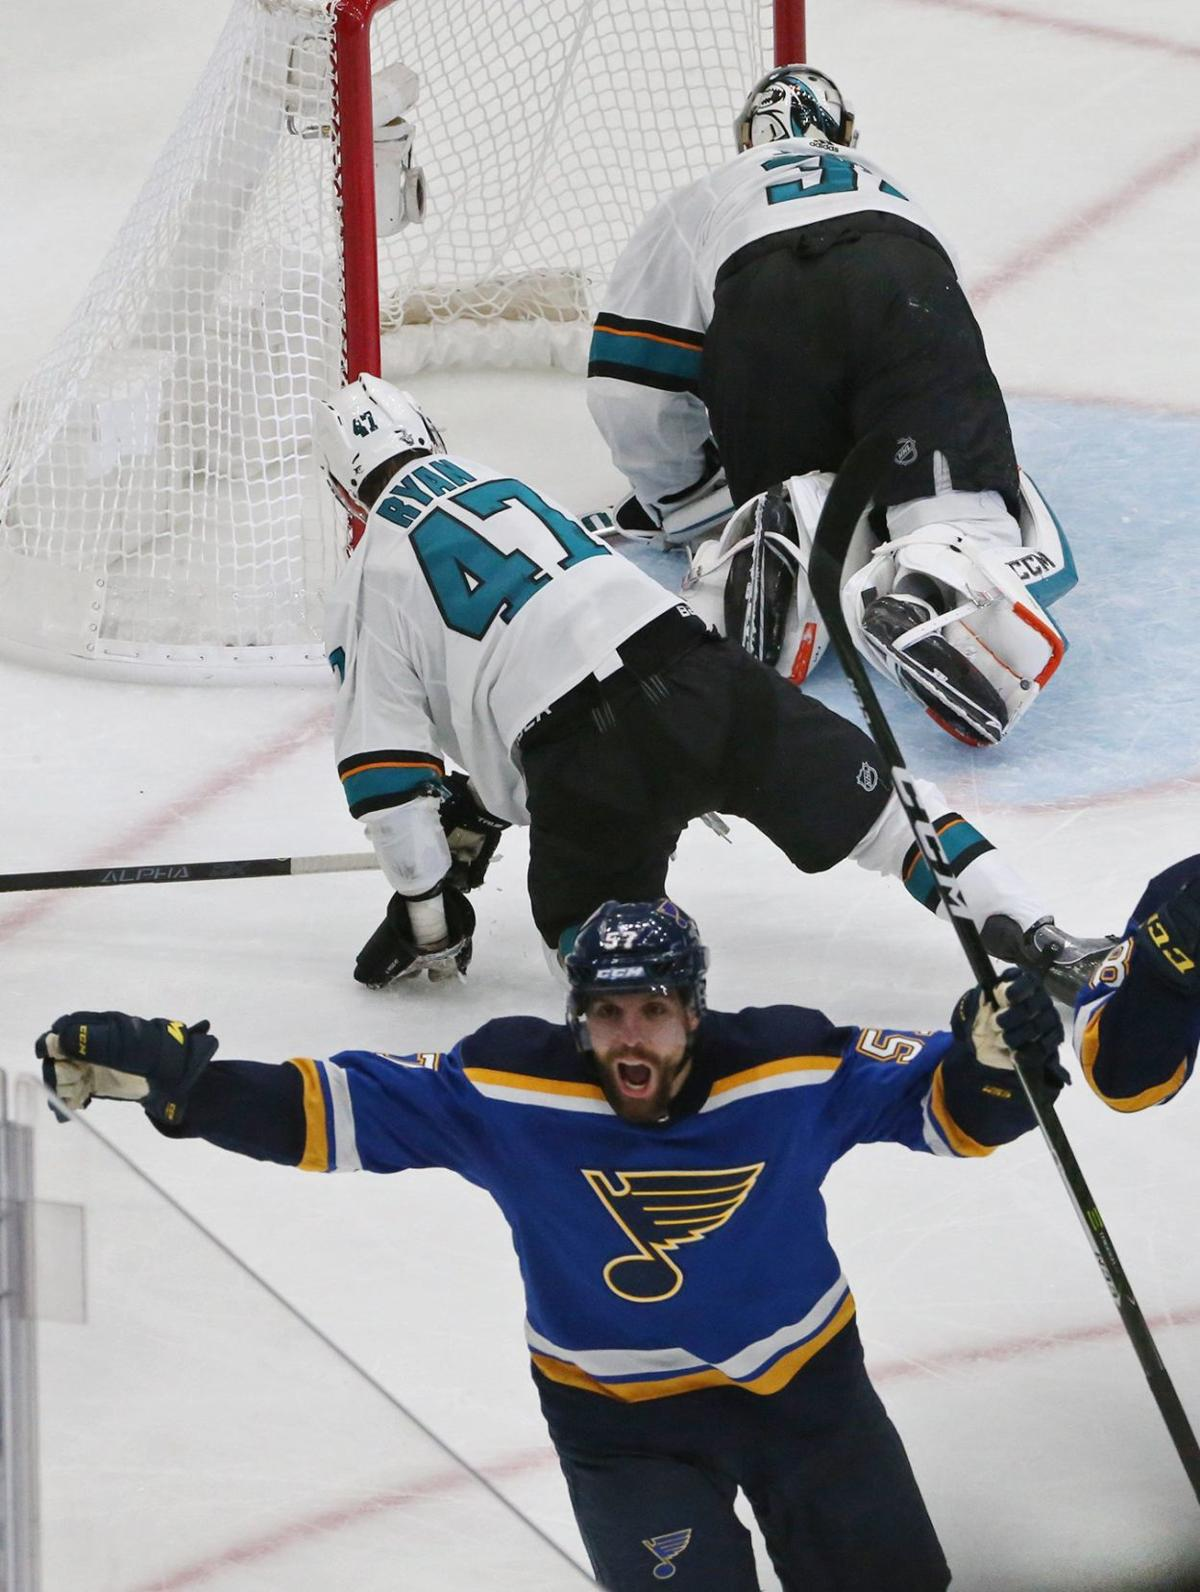 Blues and Sharks go for broke in game 6 of the semifinals